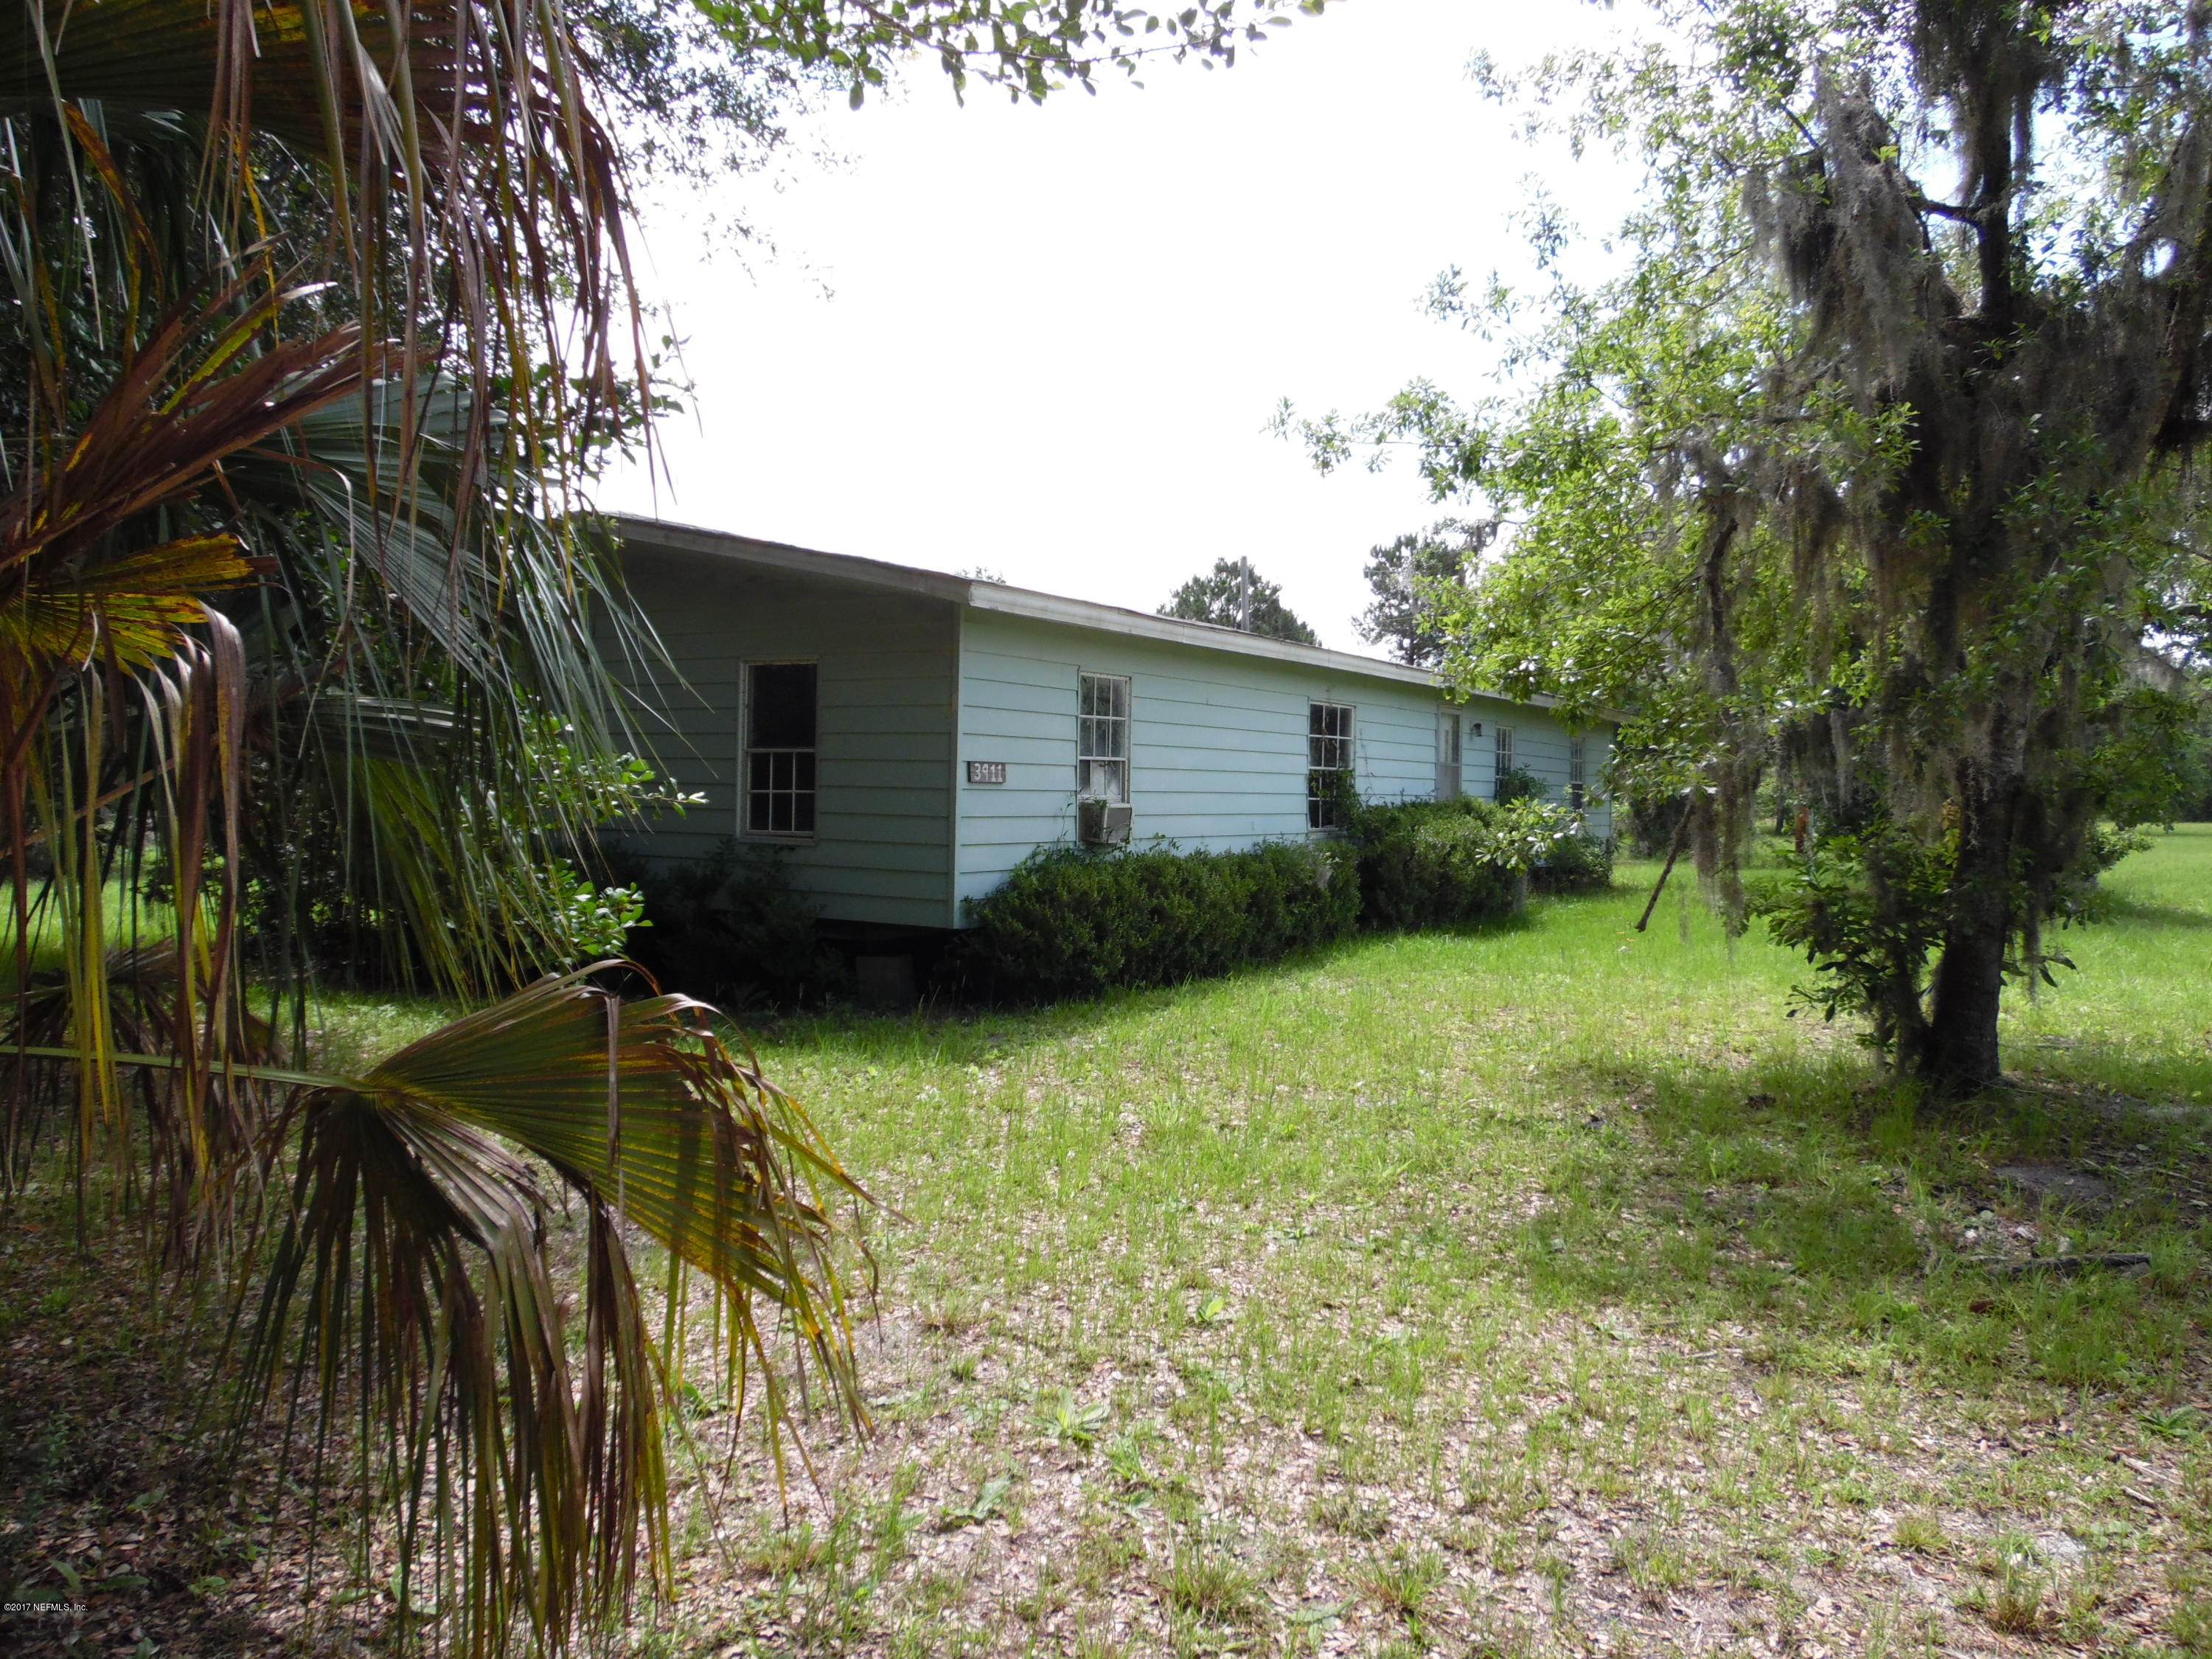 3917 STARRATT, JACKSONVILLE, FLORIDA 32226, 3 Bedrooms Bedrooms, ,2 BathroomsBathrooms,Residential - single family,For sale,STARRATT,887582